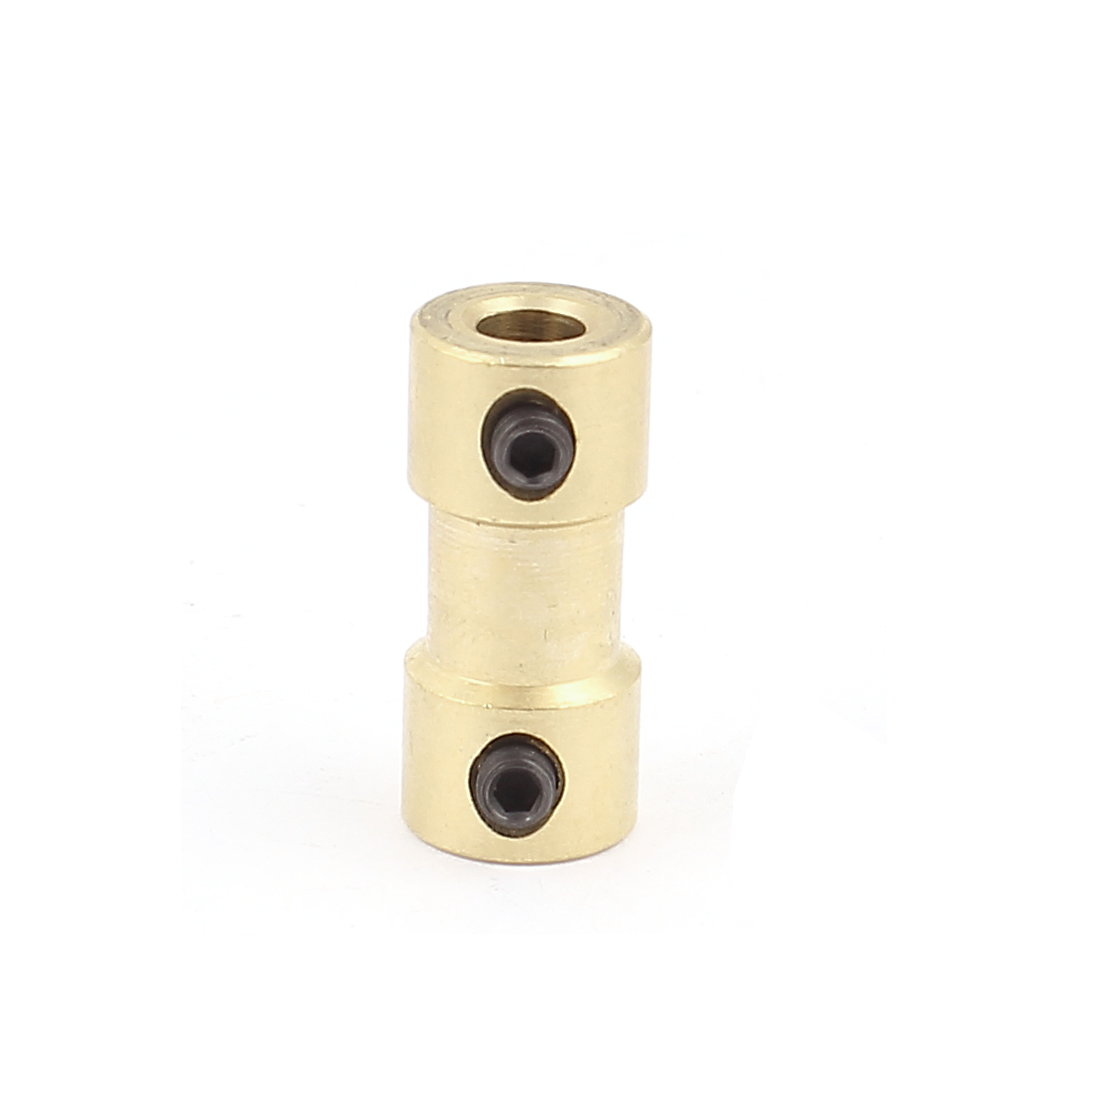 4mm to 4mm Copper DIY Motor Shaft Coupling Joint Connector for Electric Car Toy